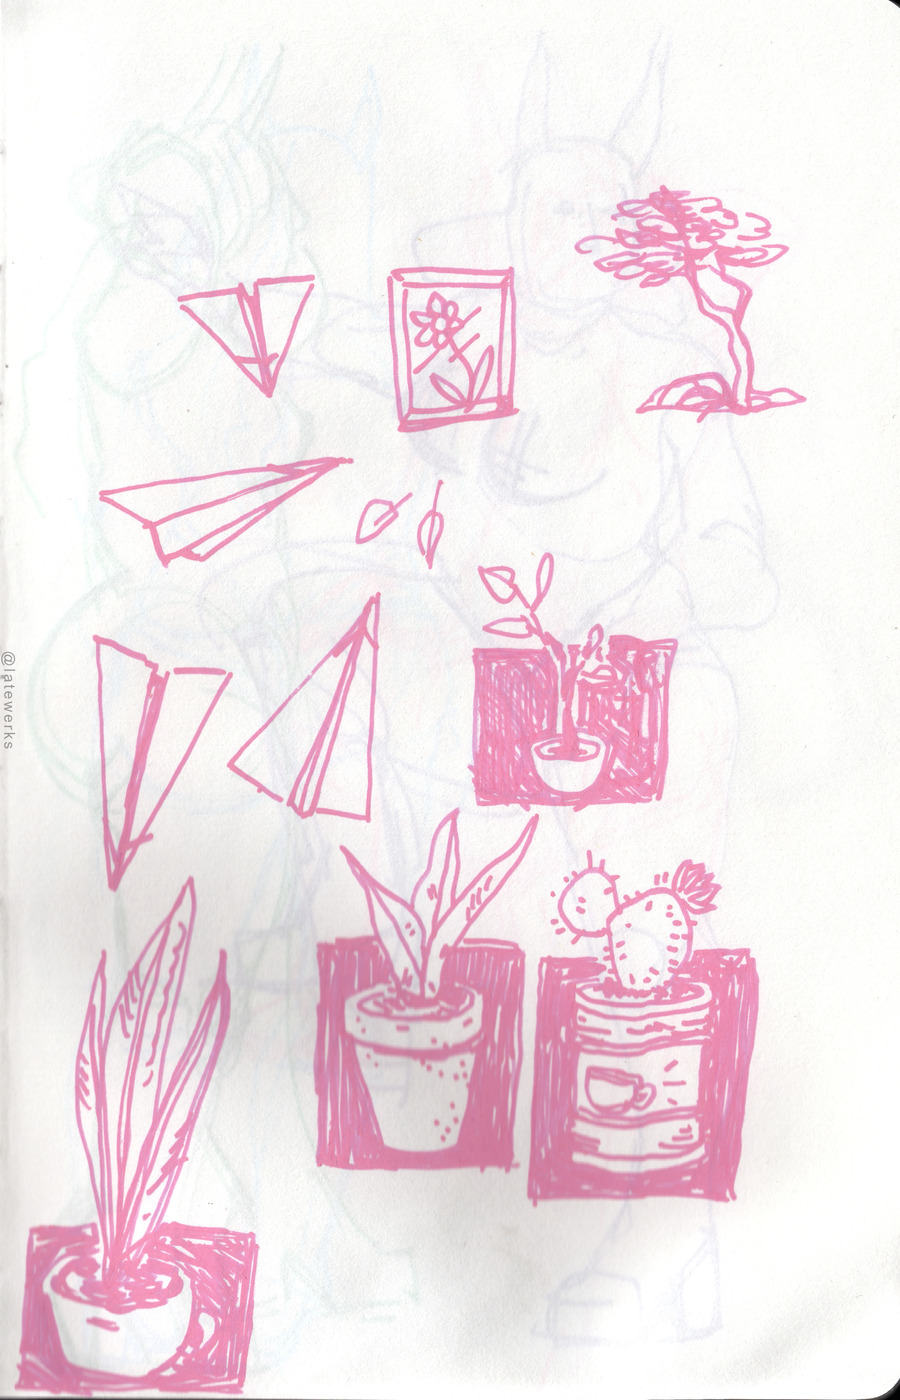 Scibble plants, paper planes